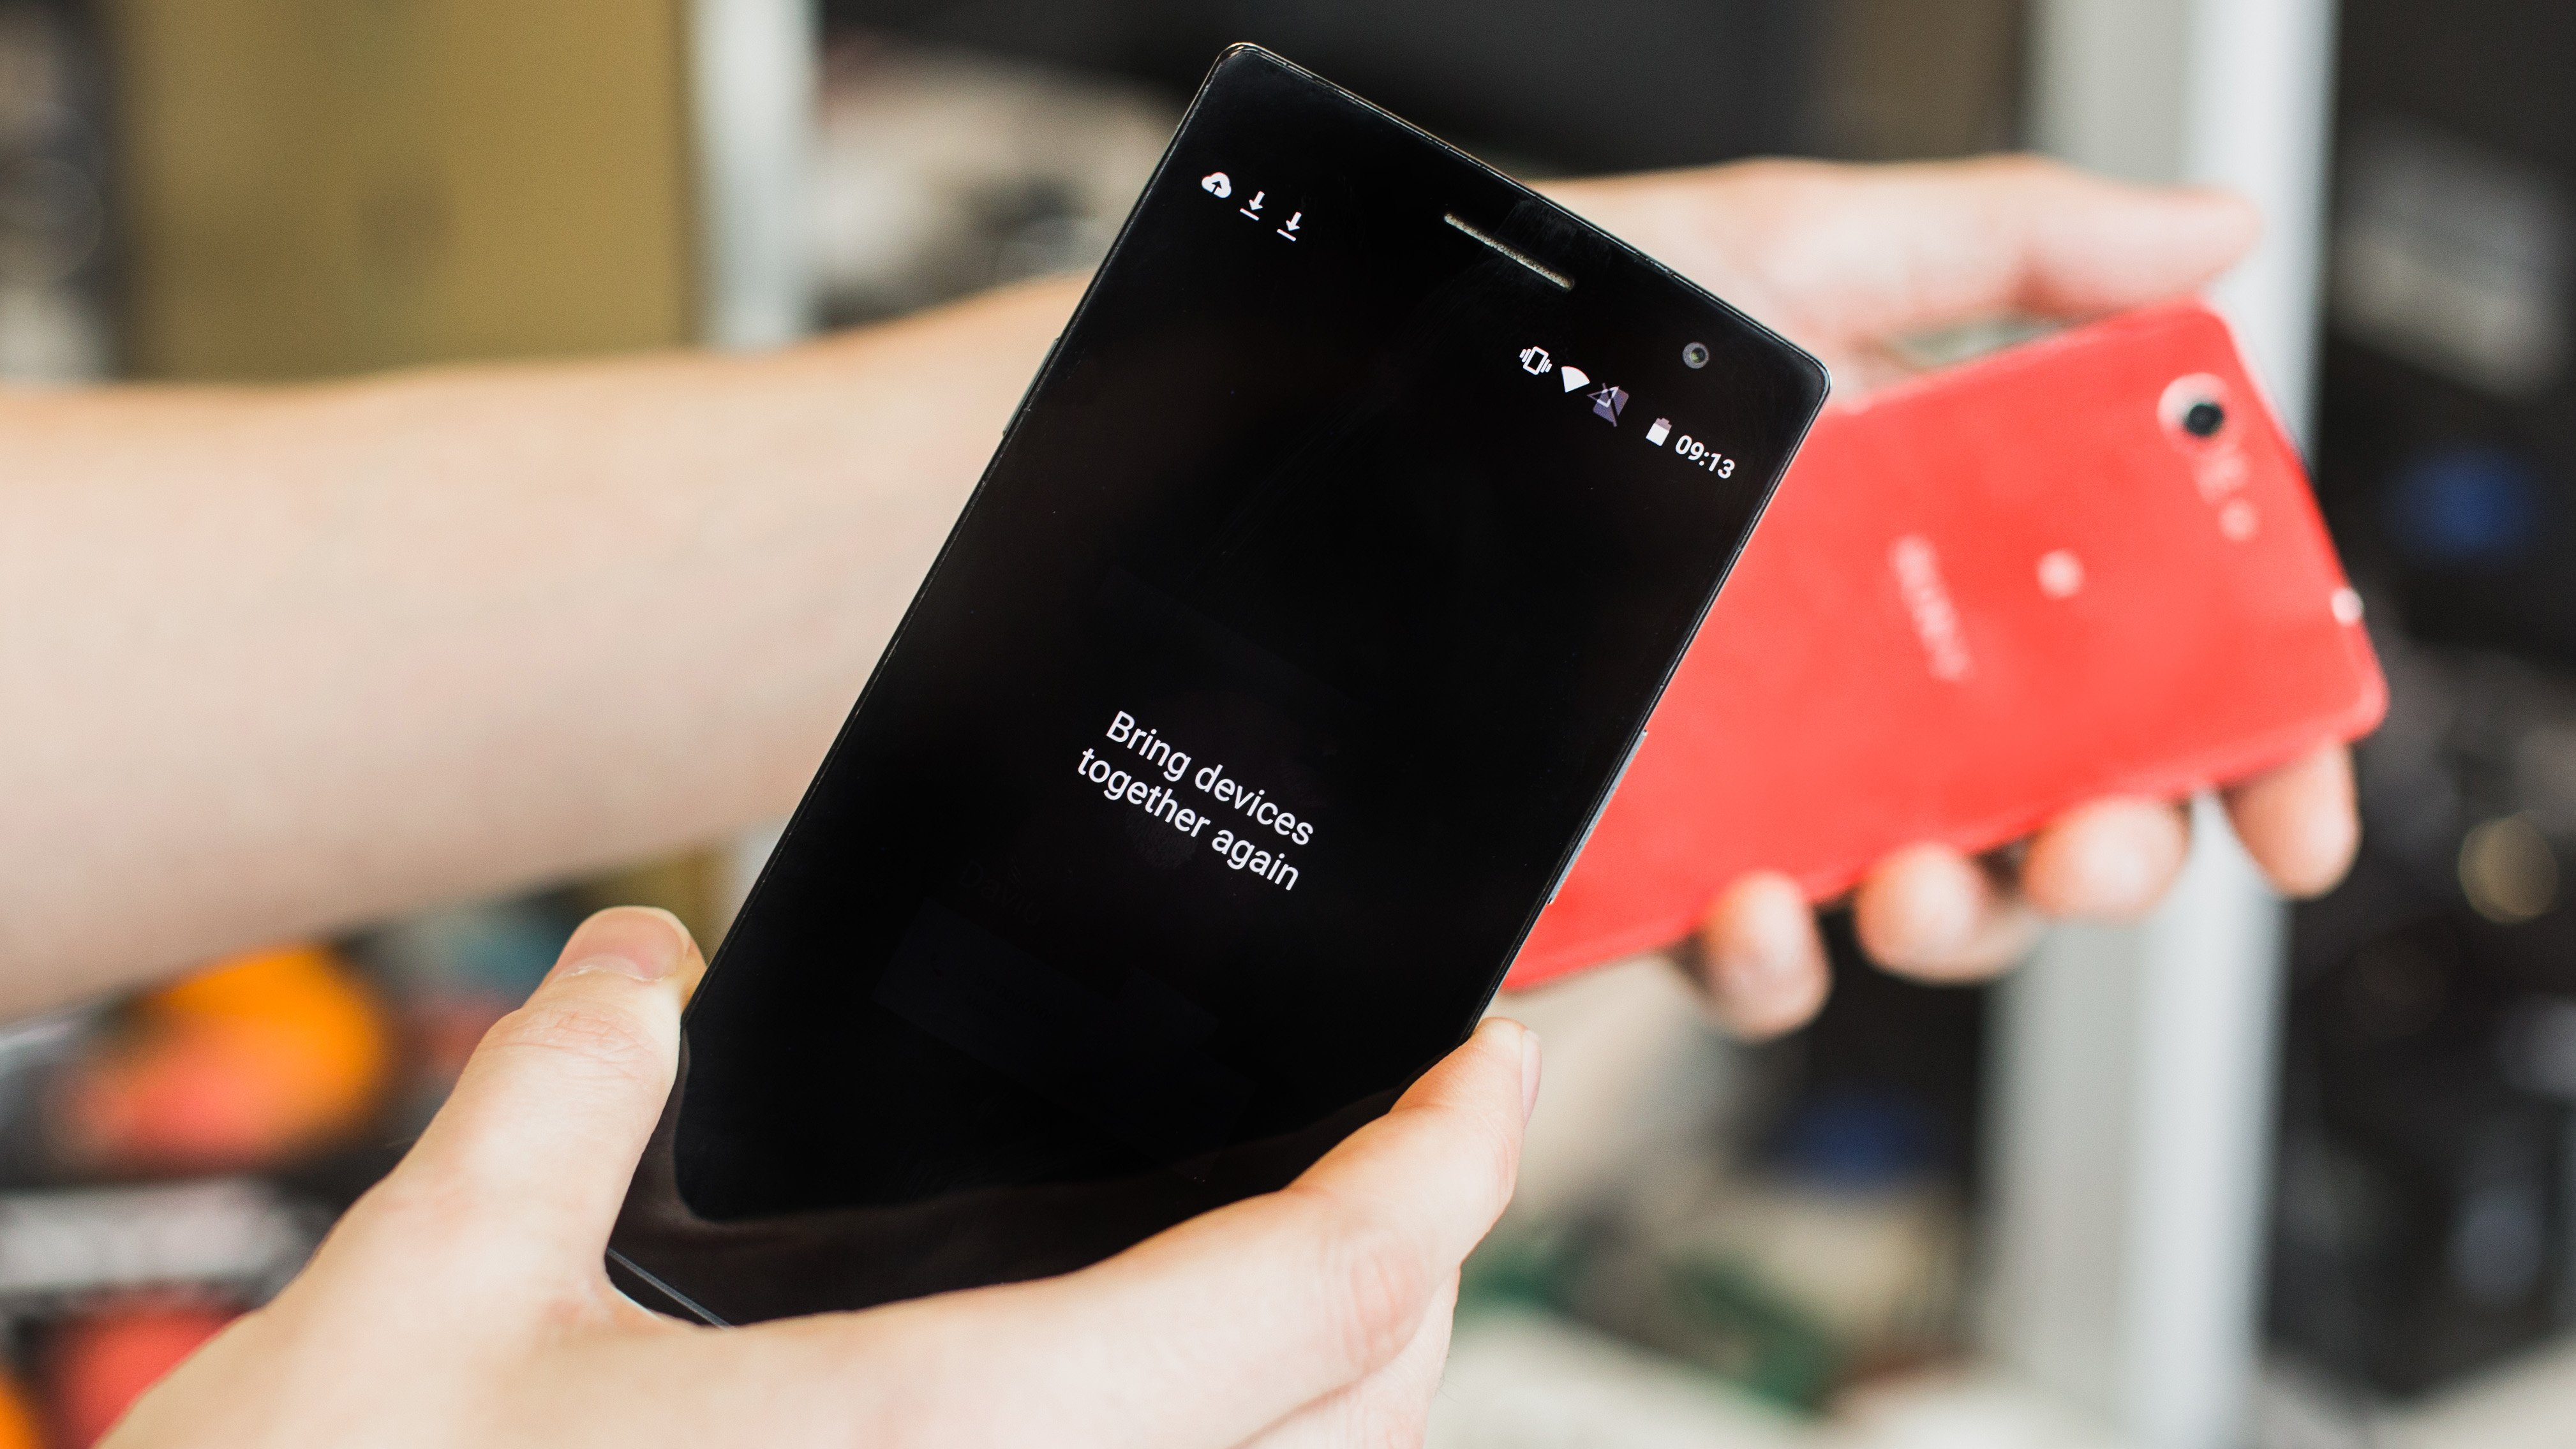 Camera Android Nfc Phones what is nfc and why should i use it androidpit